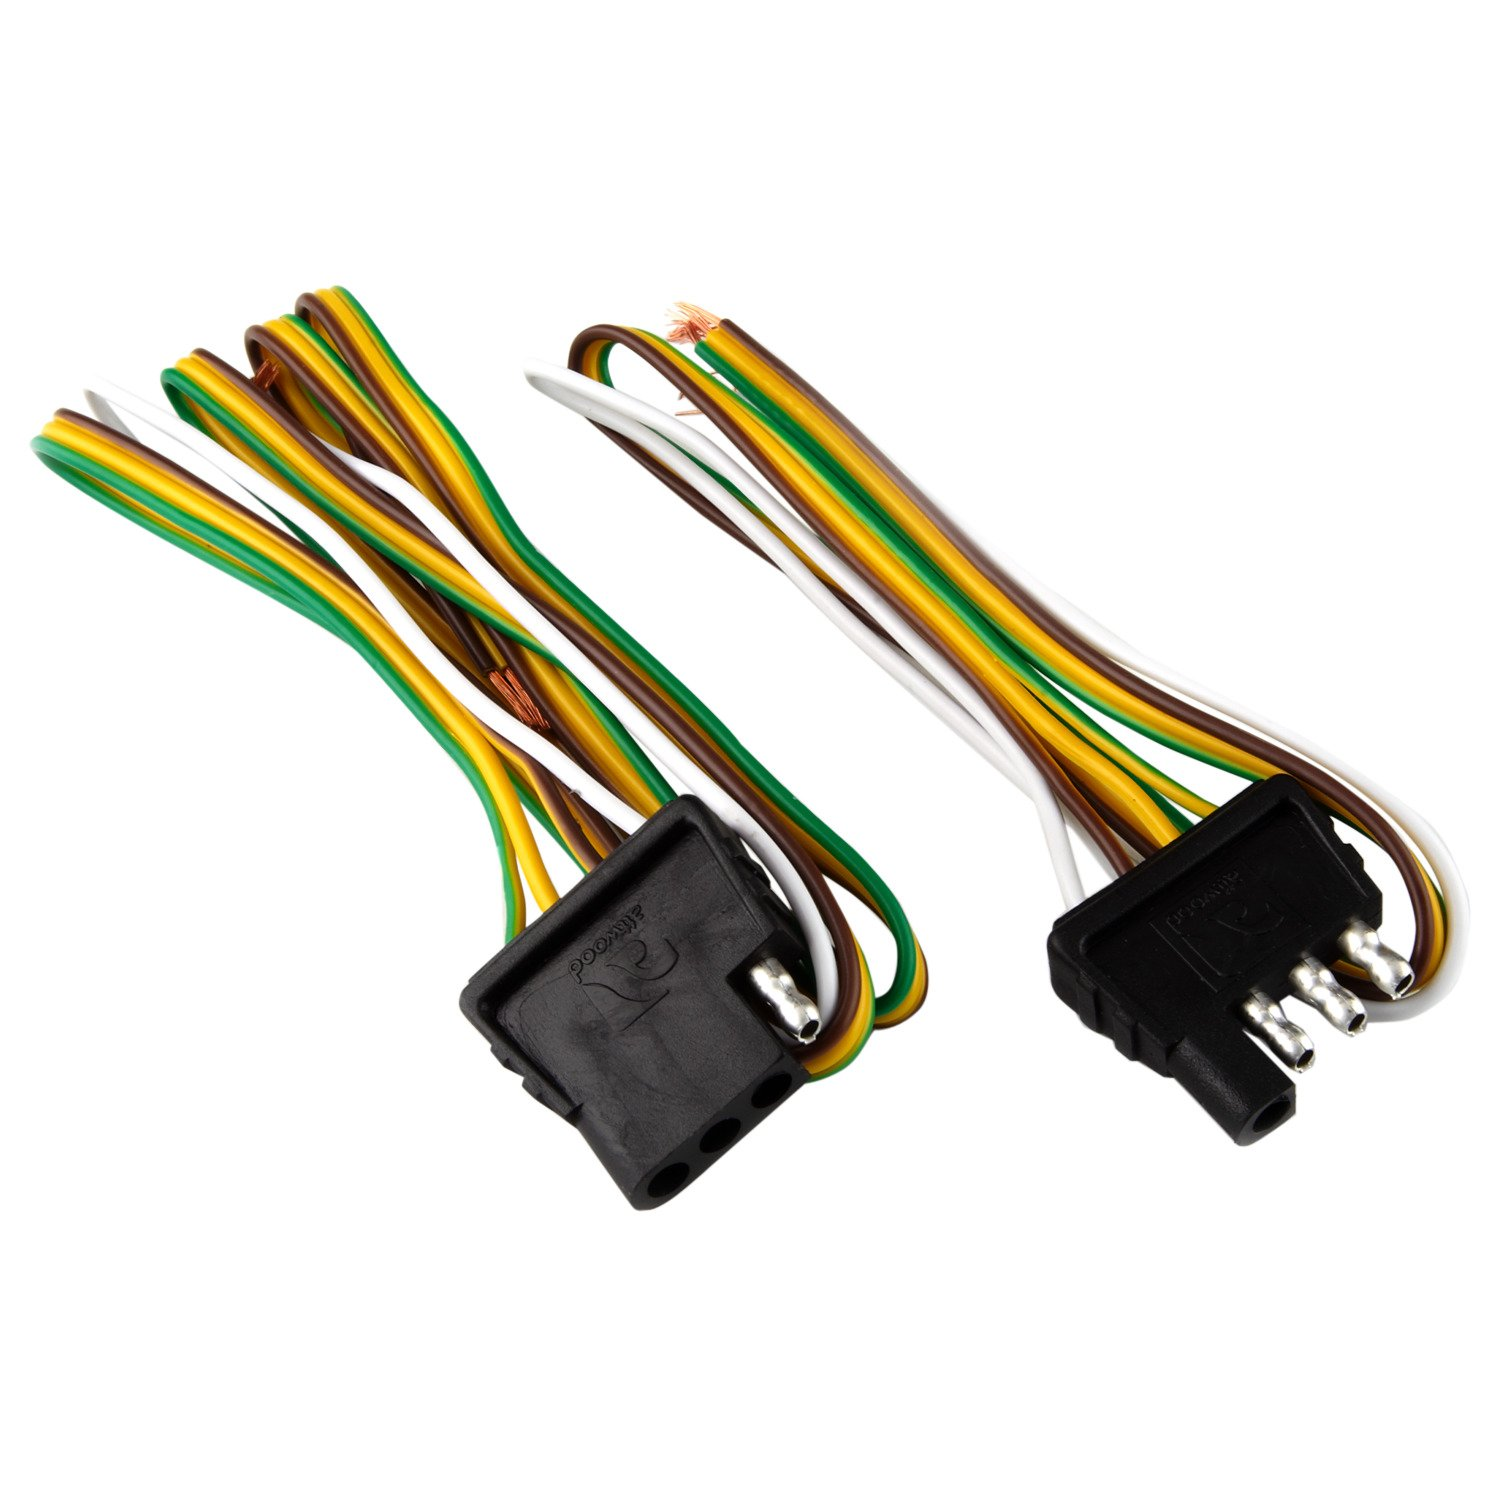 attwood 4 way flat wiring harness kit for vehicles and trailers 4 way flat connector for ford 4 way wiring harness [ 1500 x 1500 Pixel ]